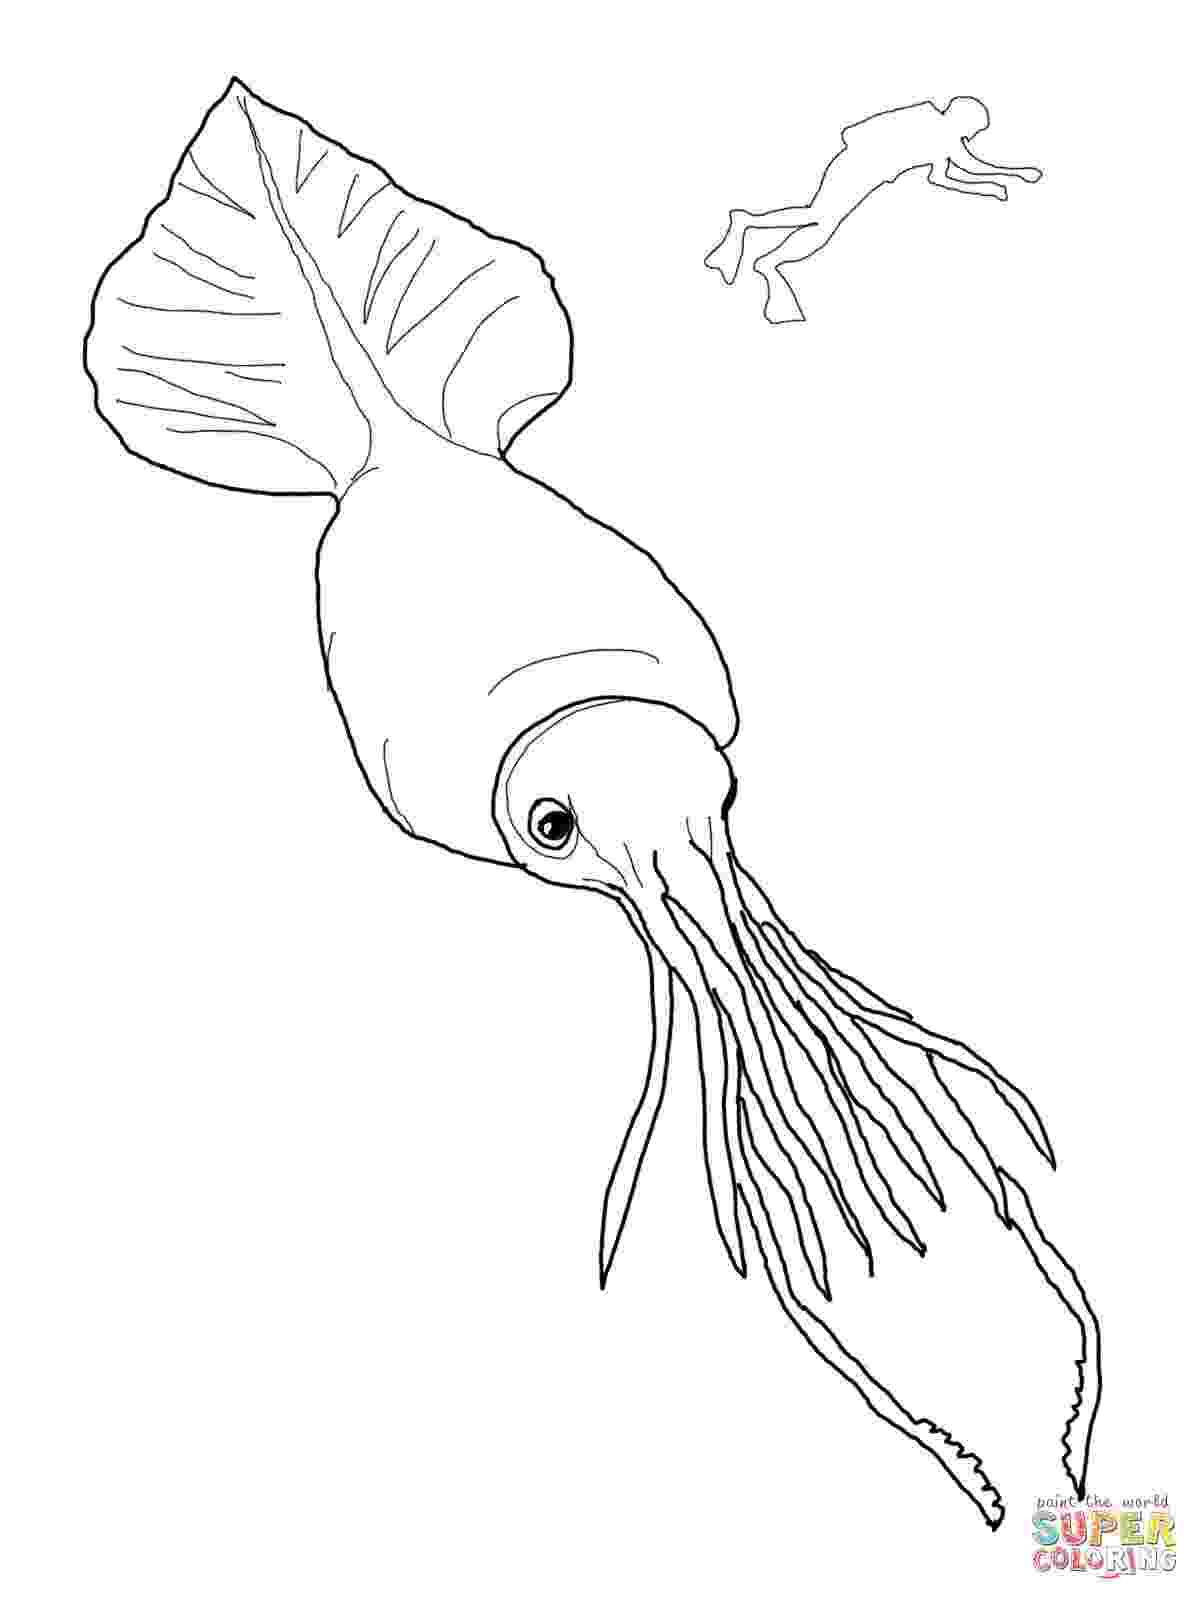 antarctica coloring page winged strawberry resources for parents and teachers antarctica coloring page